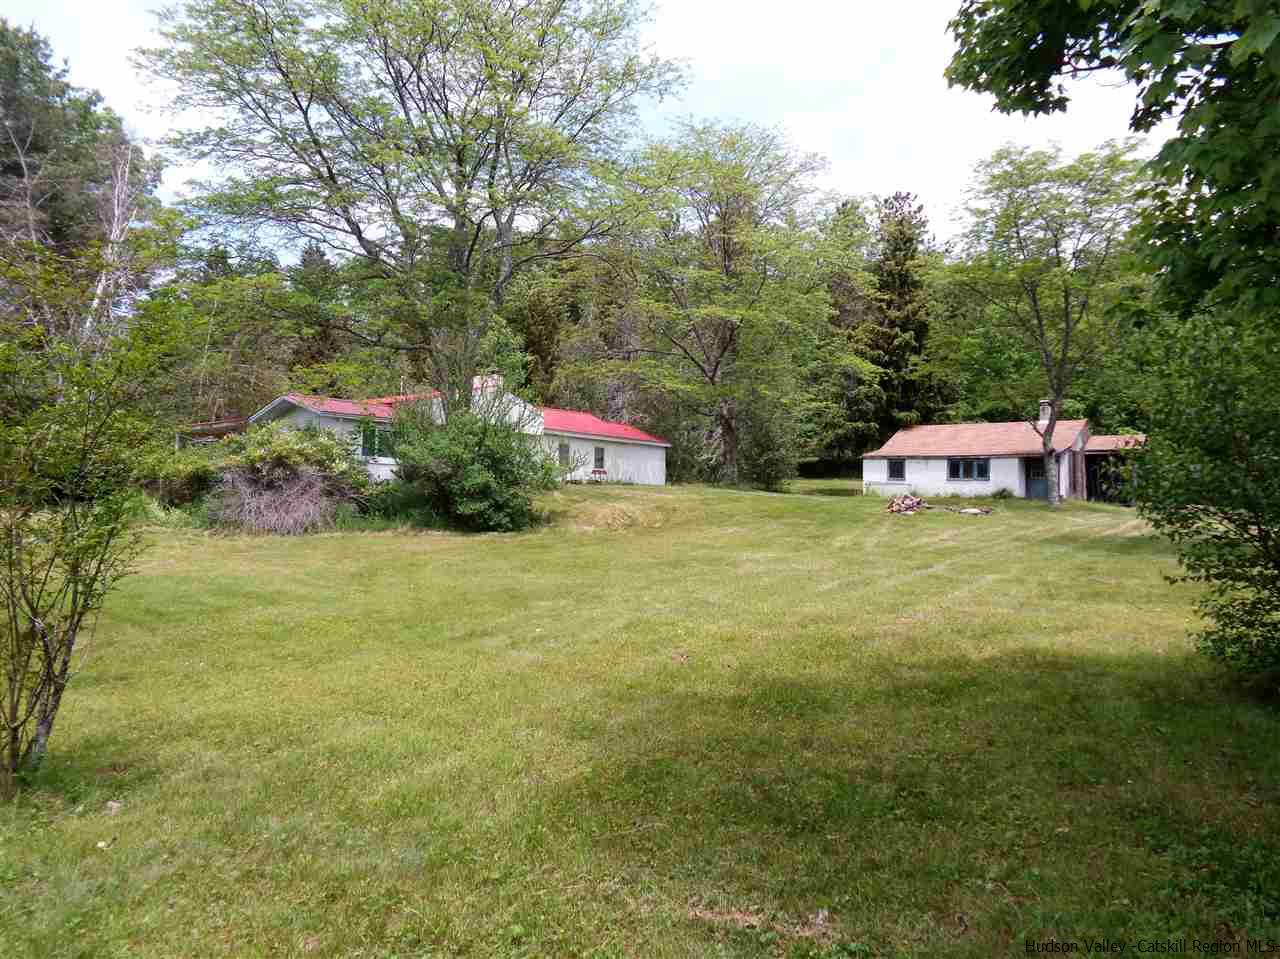 Single Family Home for Sale at 300 LOSEE Road 300 LOSEE Road Jewett, New York 12444 United States